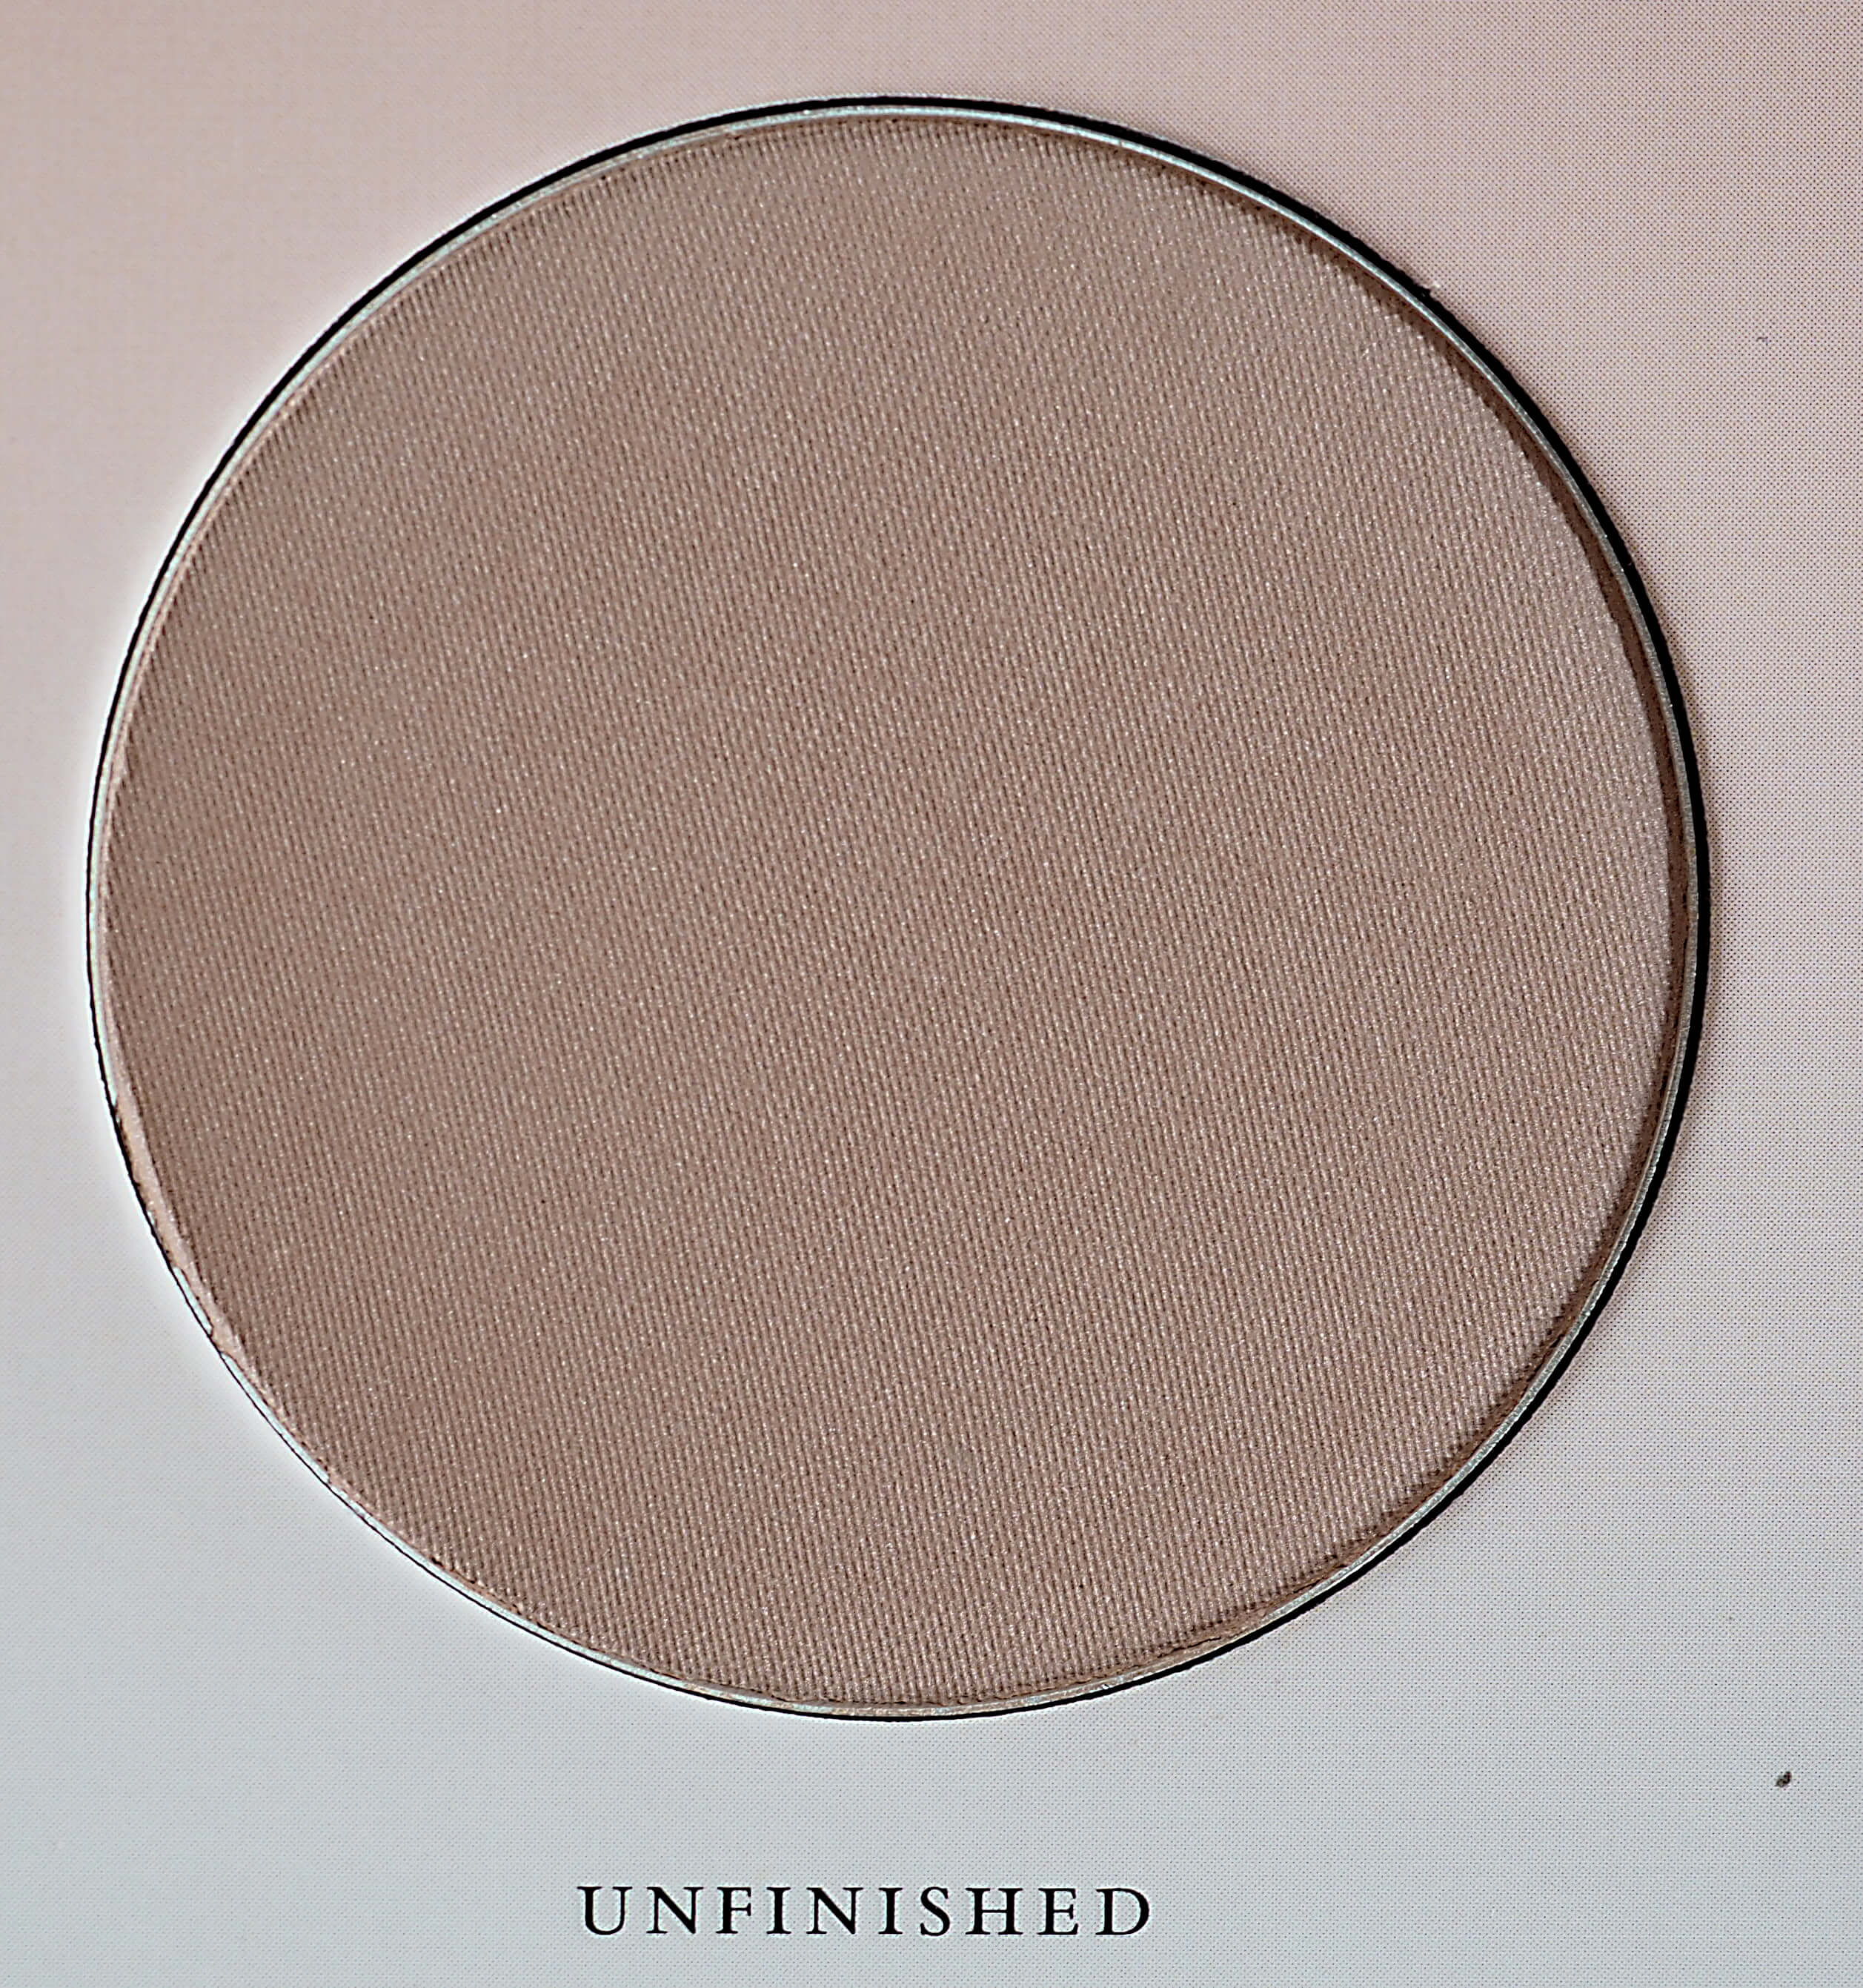 BRONZER UNFINISHED ZOEVA THE BASIC MOMENT BLUSH PALETTE